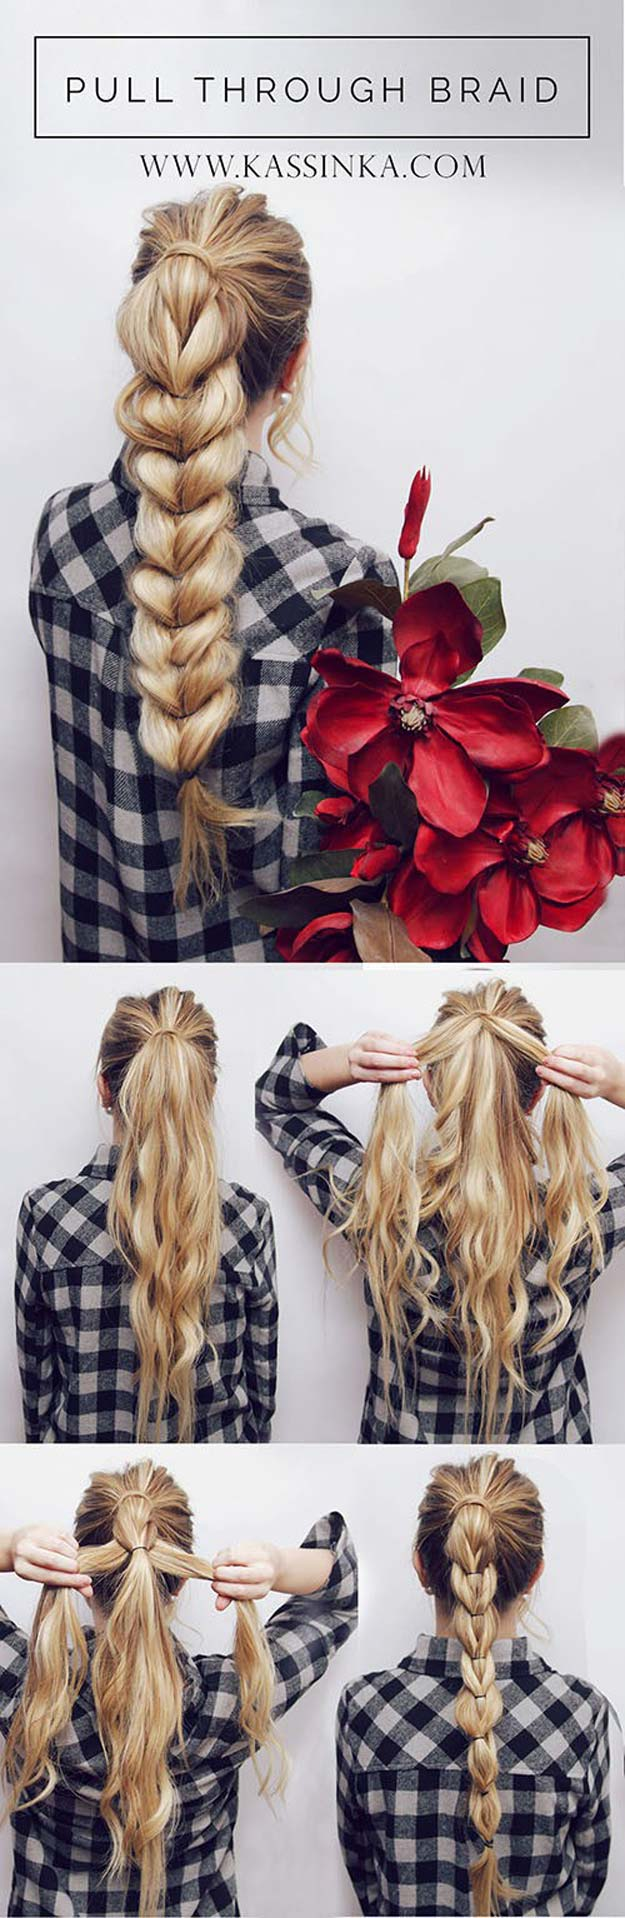 Best Hair Braiding Tutorials - Pull Through Braid Tutorial - Easy Step by Step Tutorials for Braids - How To Braid Fishtail, French Braids, Flower Crown, Side Braids, Cornrows, Updos - Cool Braided Hairstyles for Girls, Teens and Women - School, Day and Evening, Boho, Casual and Formal Looks #hairstyles #braiding #braidingtutorials #diyhair